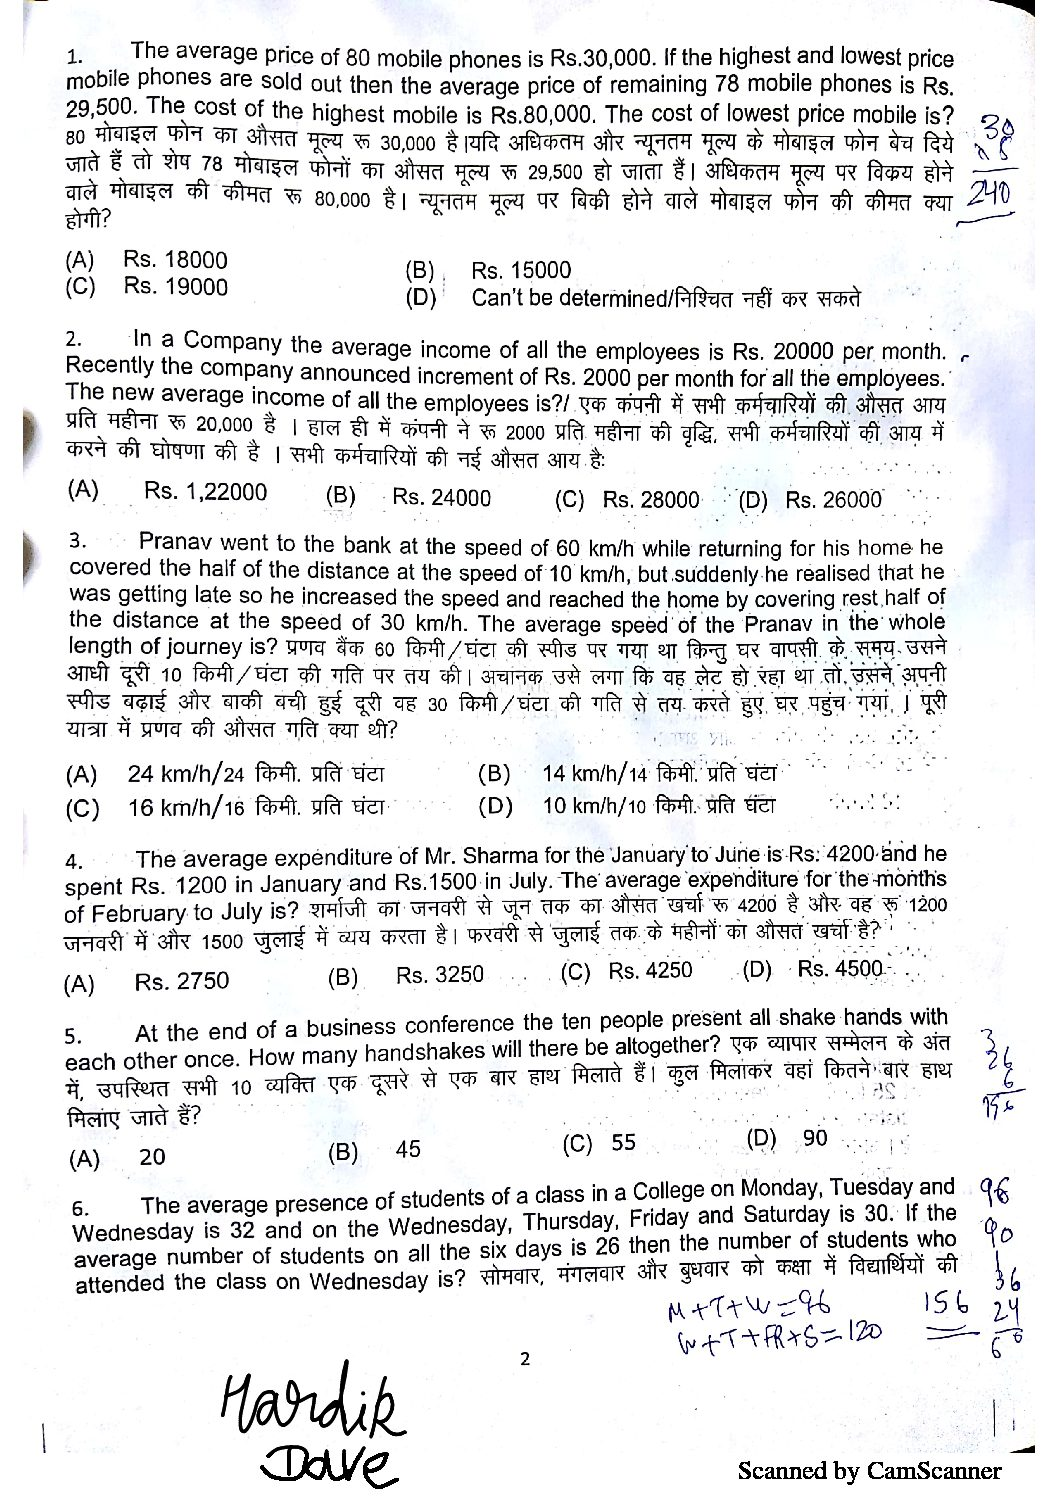 IB ACIO 2017 Questions Paper Asked on 15-10-2017 in PDF